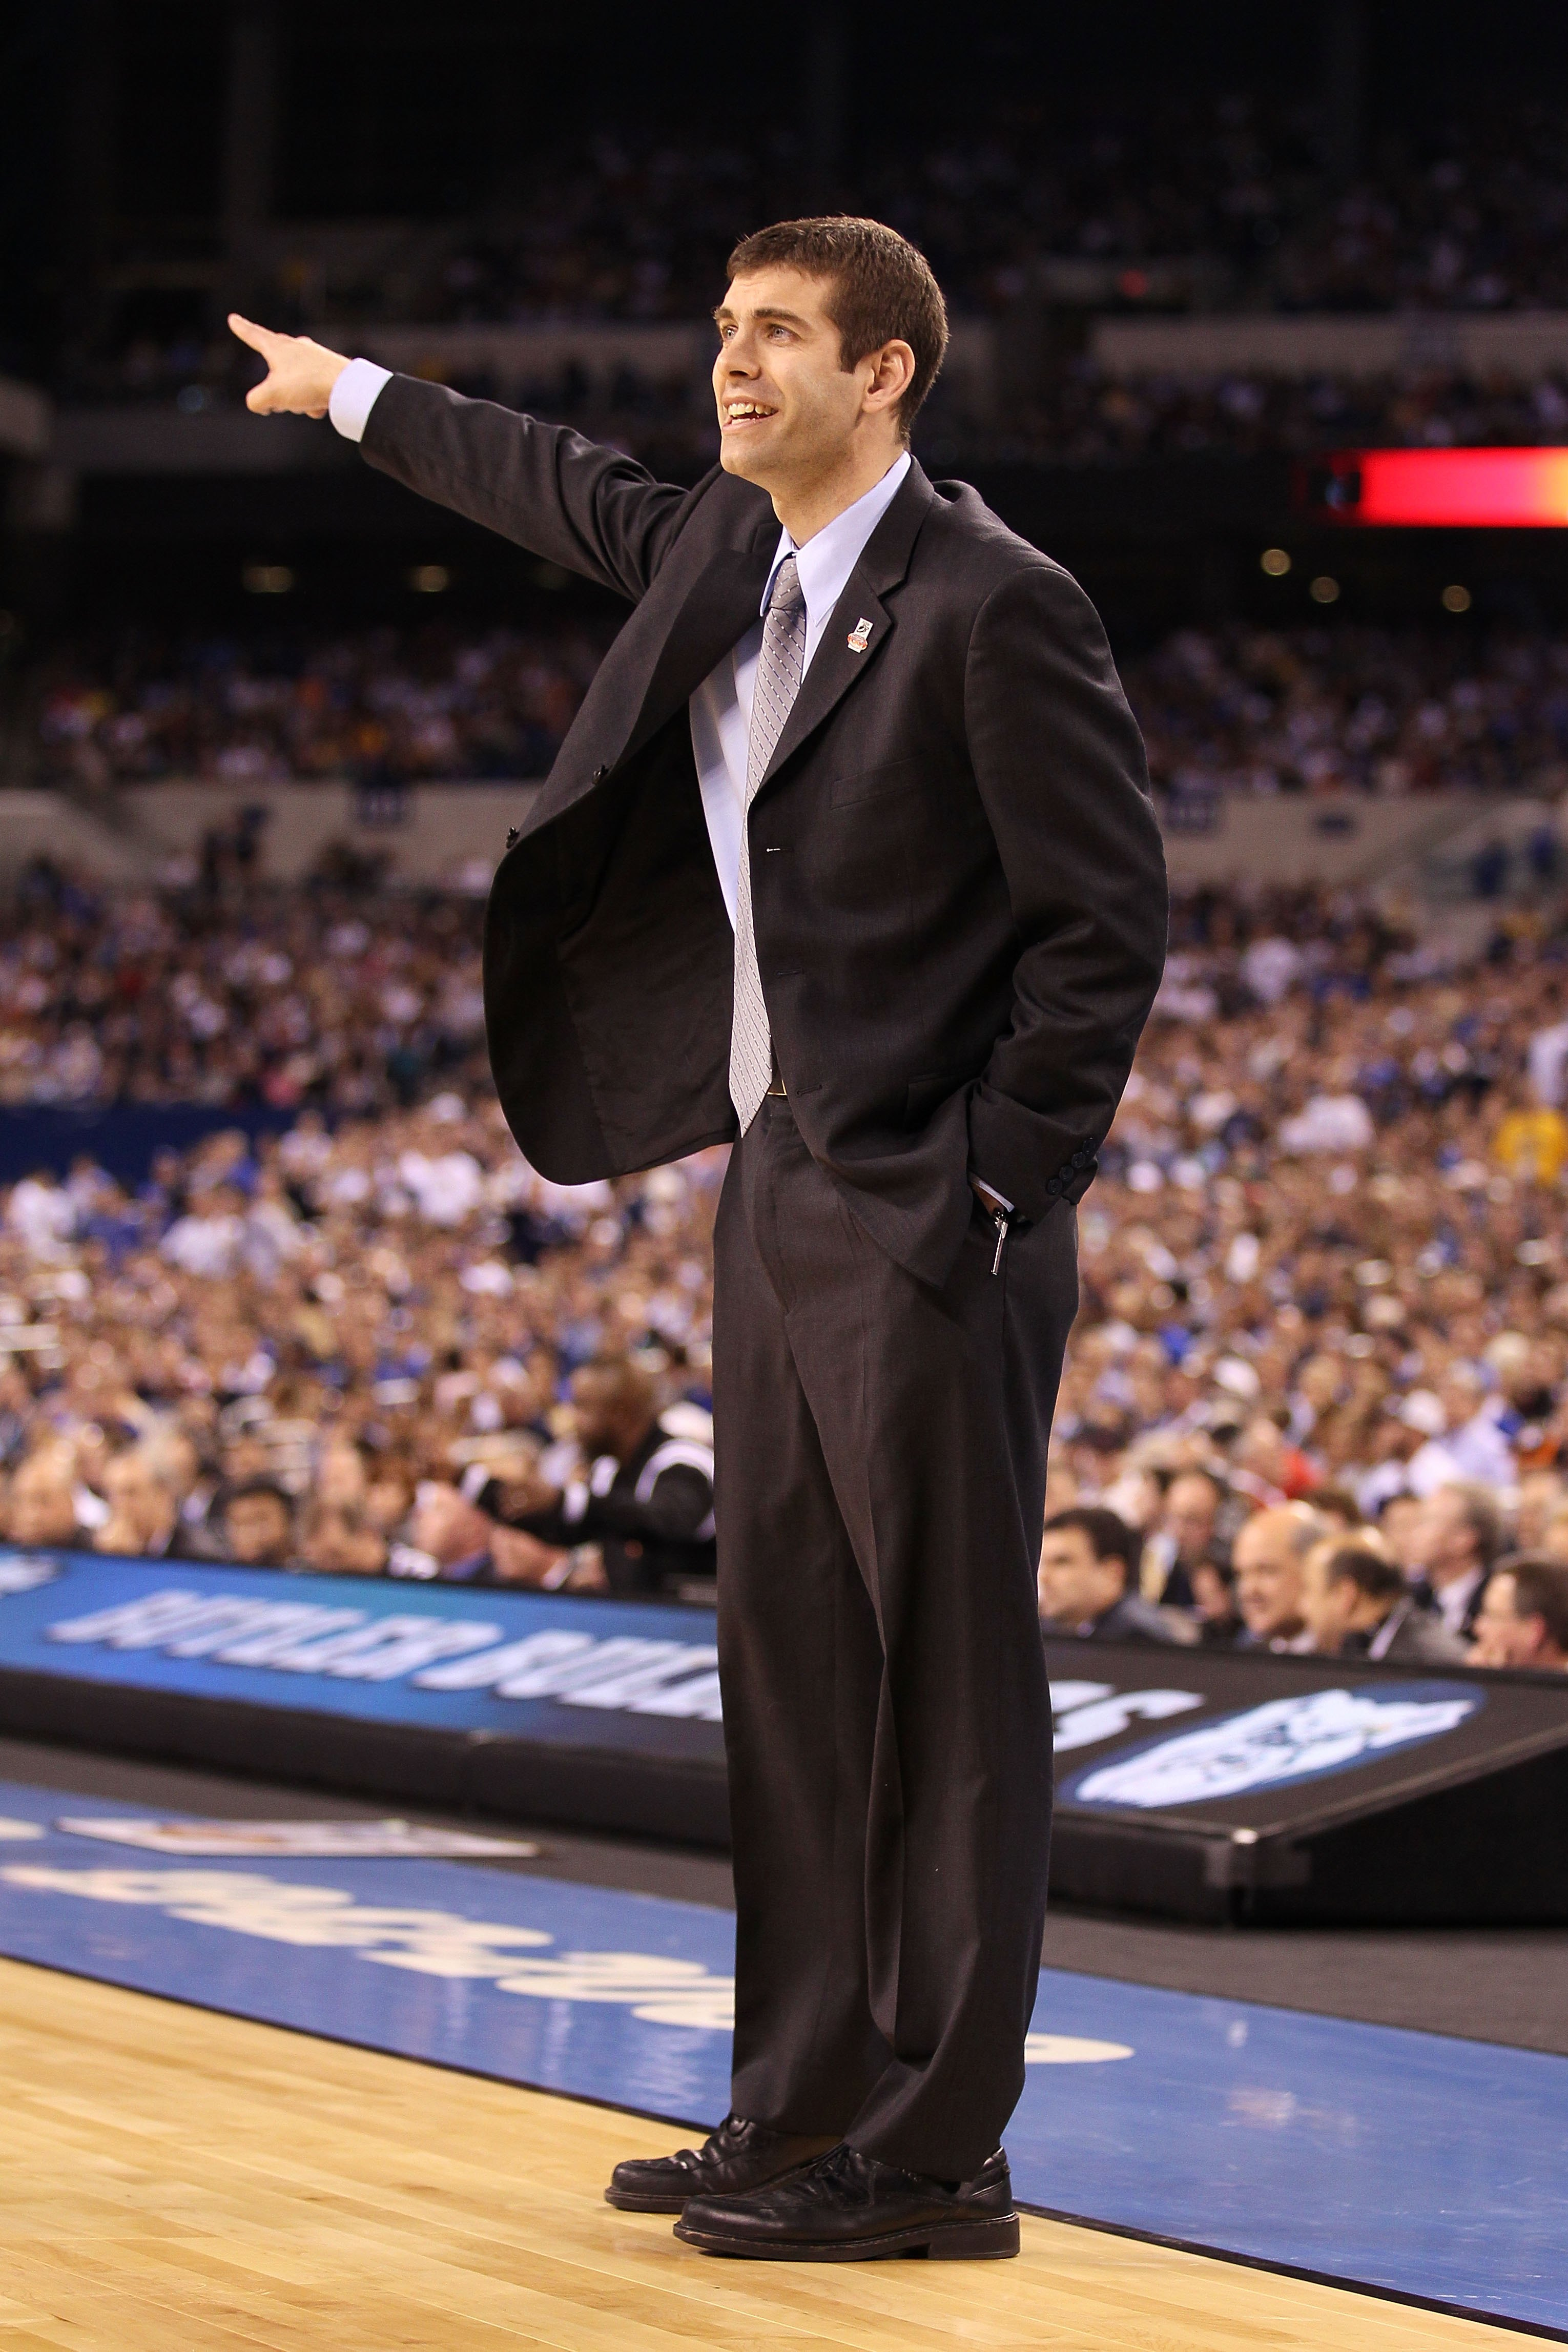 INDIANAPOLIS - APRIL 05:  Head coach Brad Stevens of the Butler Bulldogs smiles as he gestures against the Duke Blue Devils during the 2010 NCAA Division I Men's Basketball National Championship game at Lucas Oil Stadium on April 5, 2010 in Indianapolis,